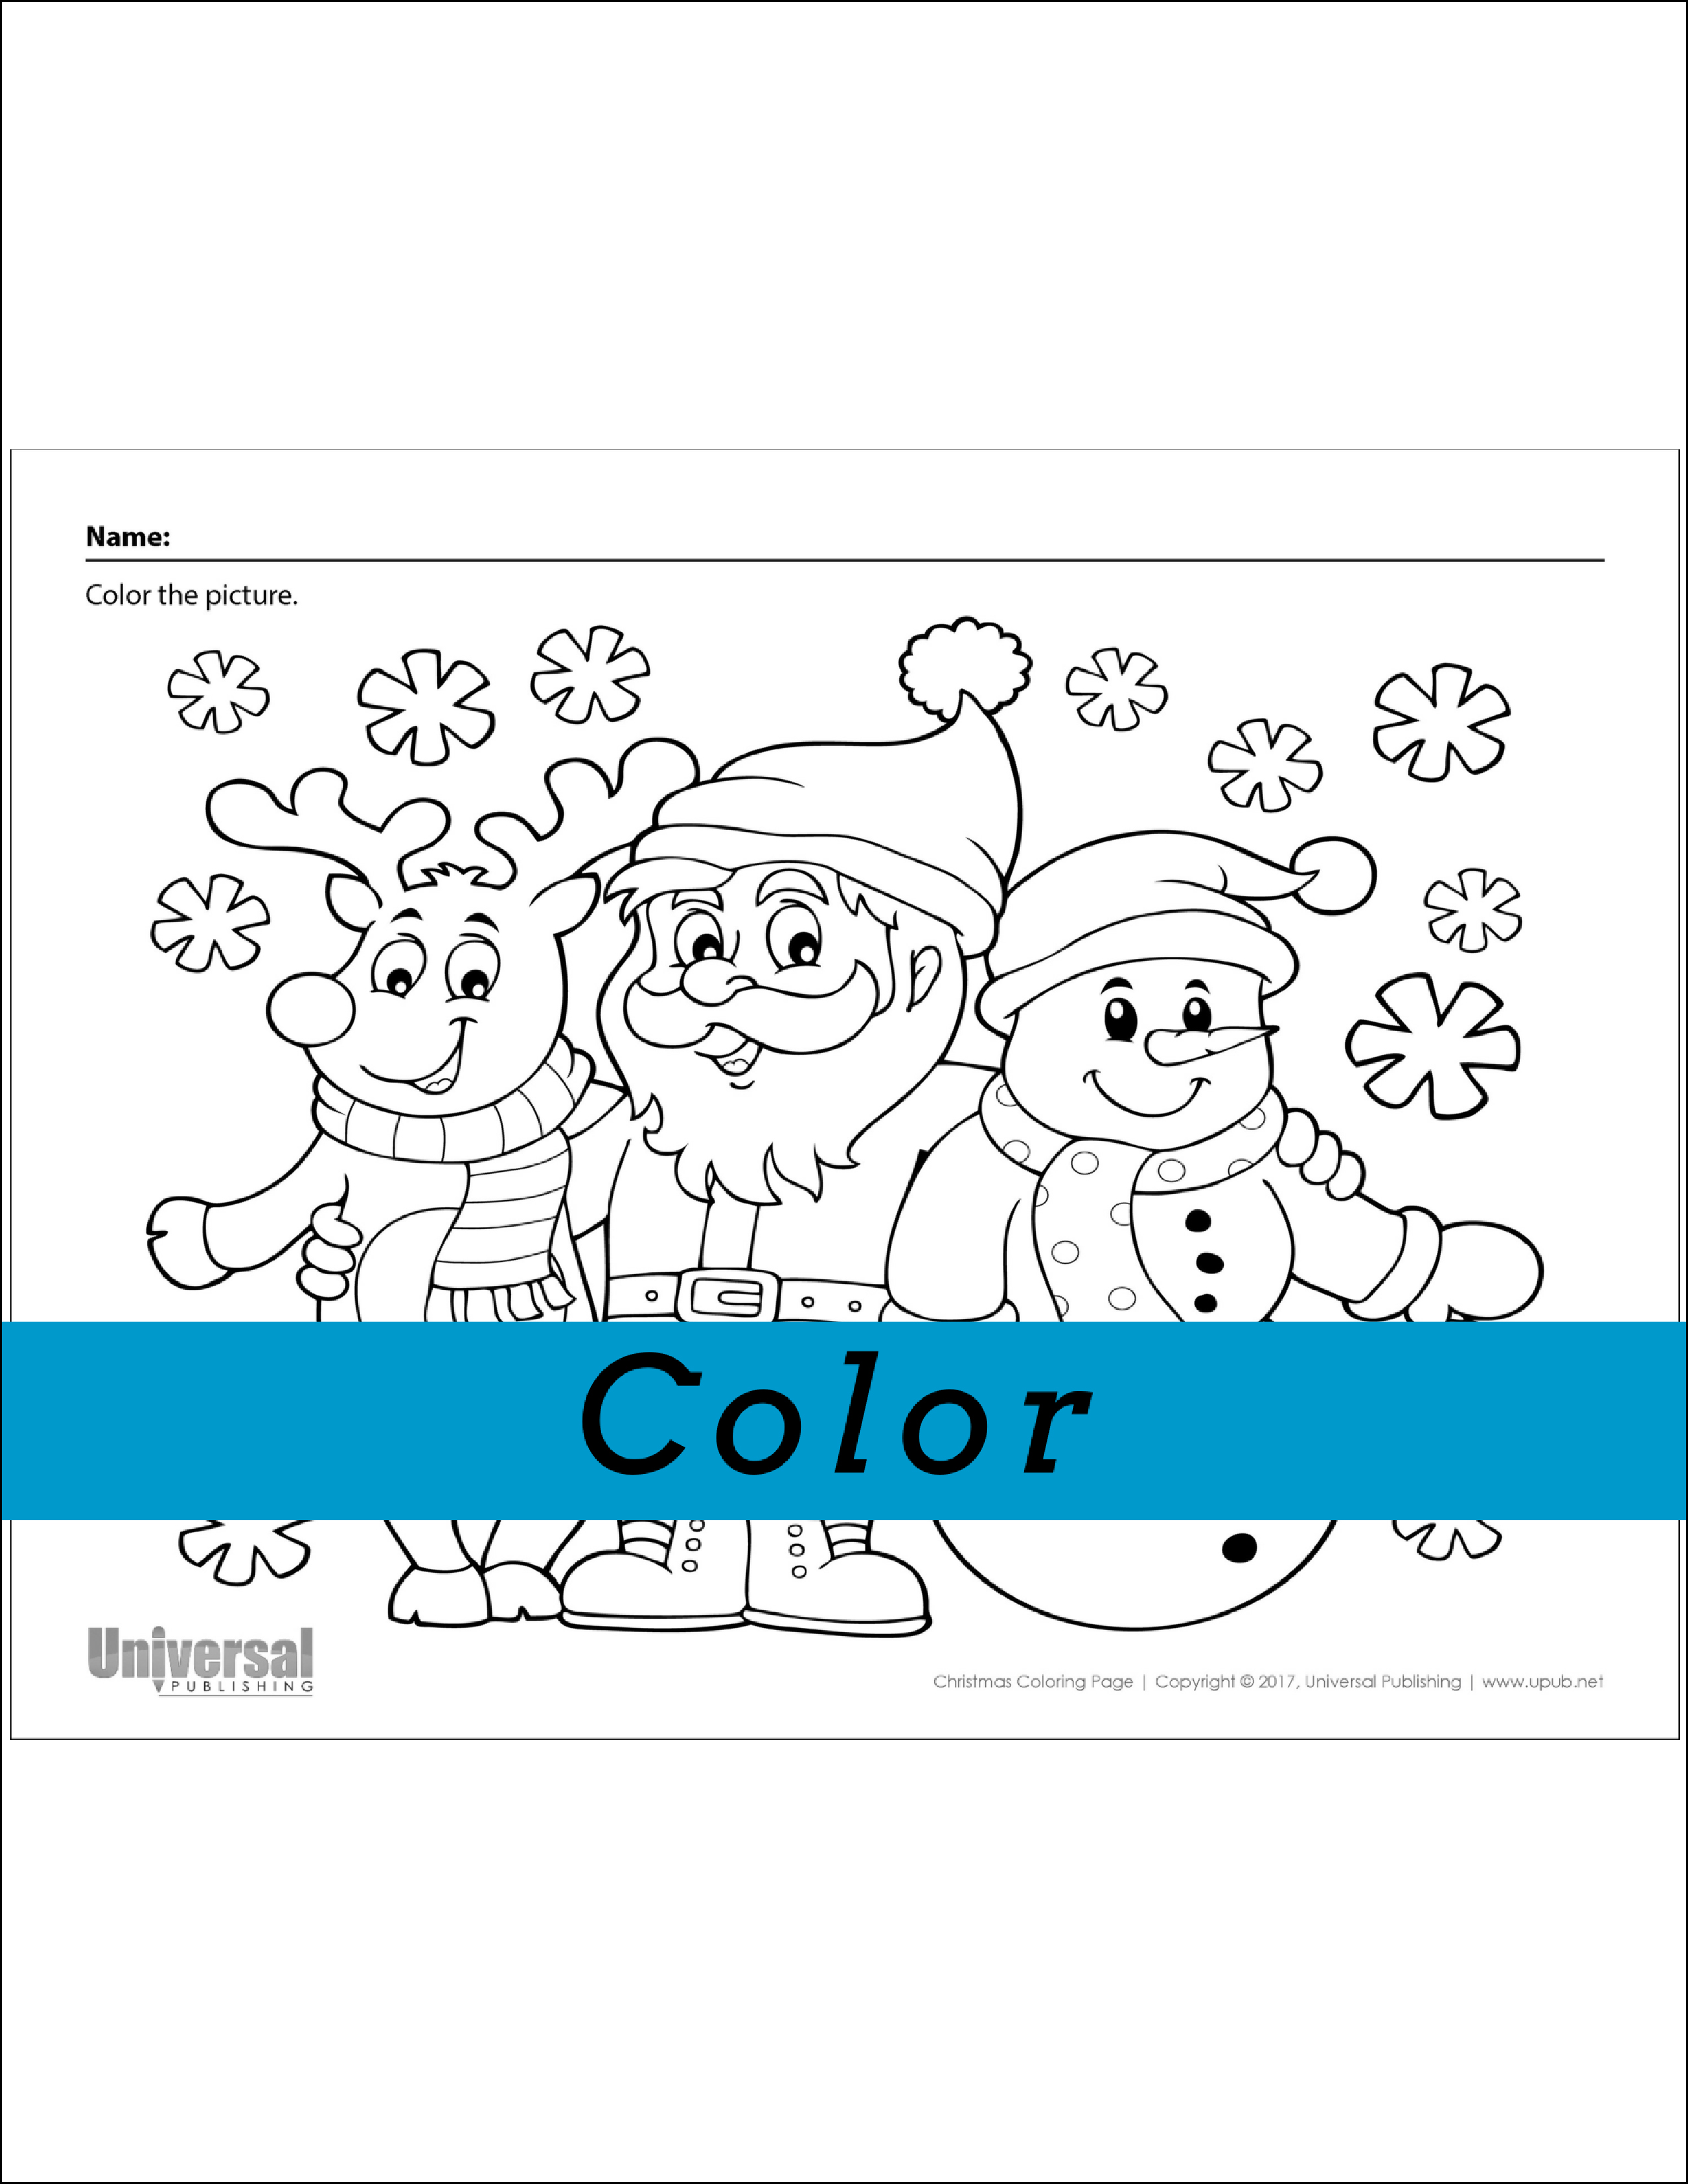 Help Remind Children To Be Kind And Others Packets For Grades K 1 3 Include Two Worksheets A Word Search Drawing Writing Activity